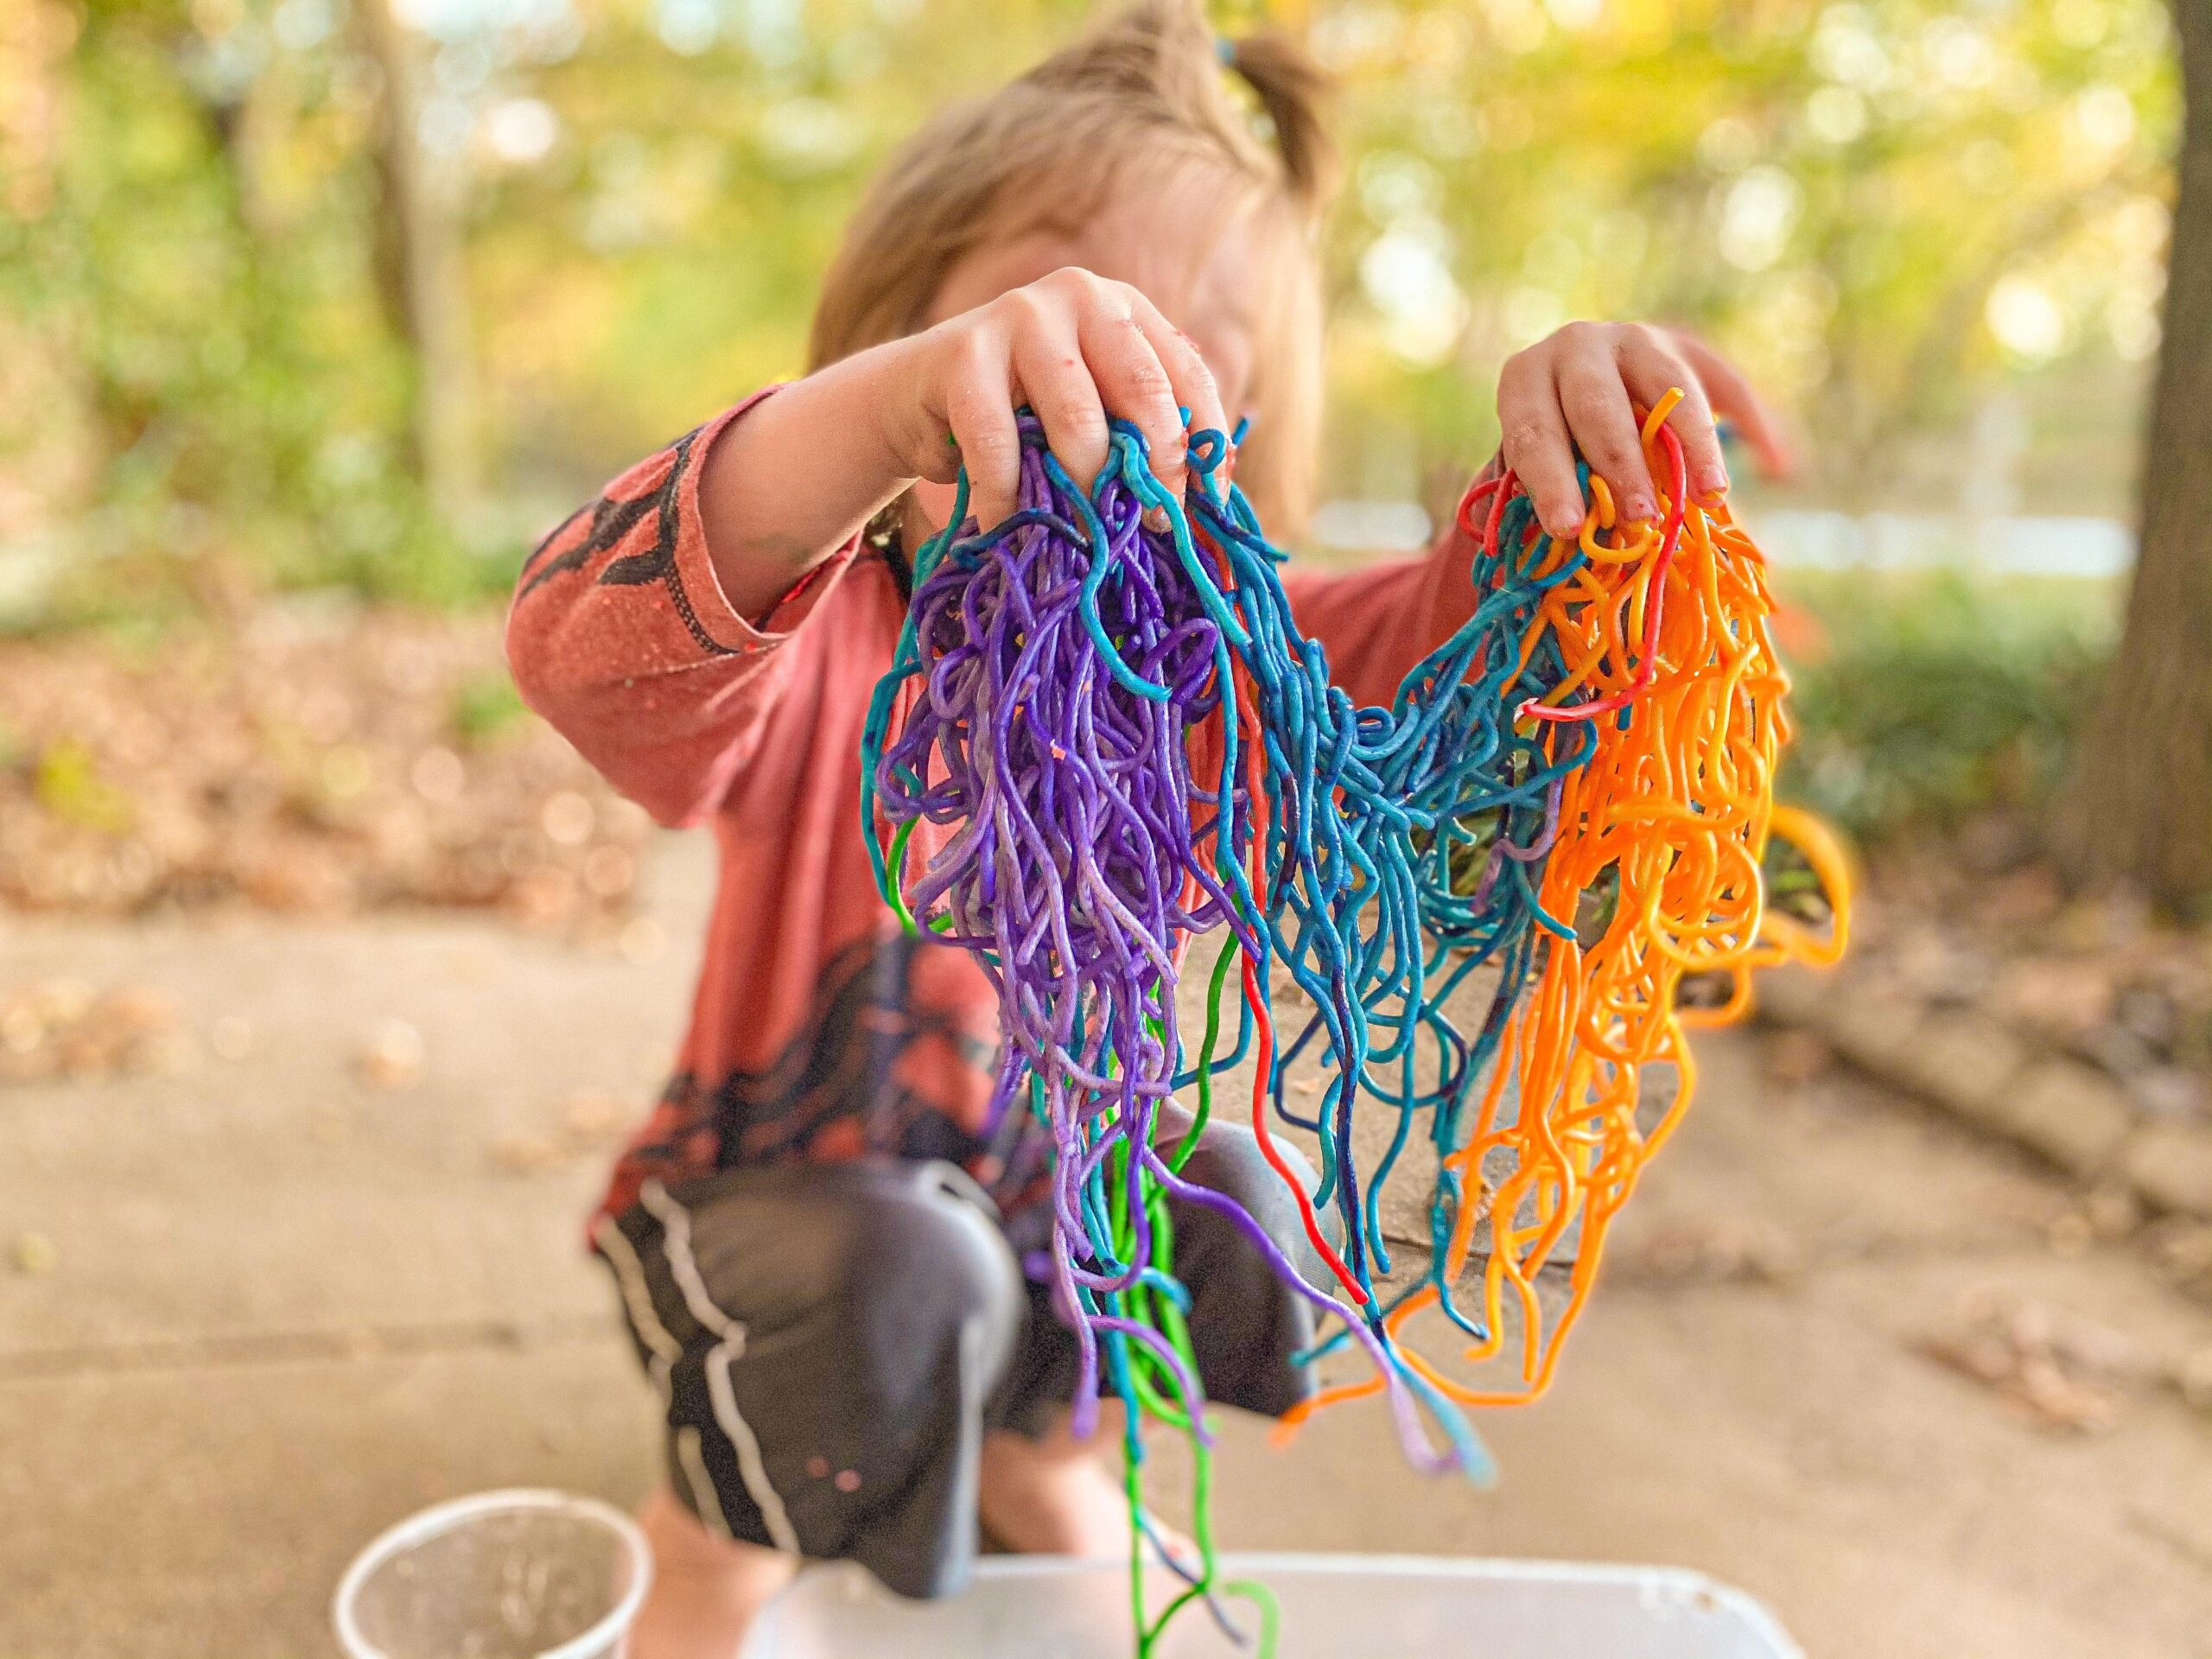 Rainbow Spaghetti Noodles for Sensory Play